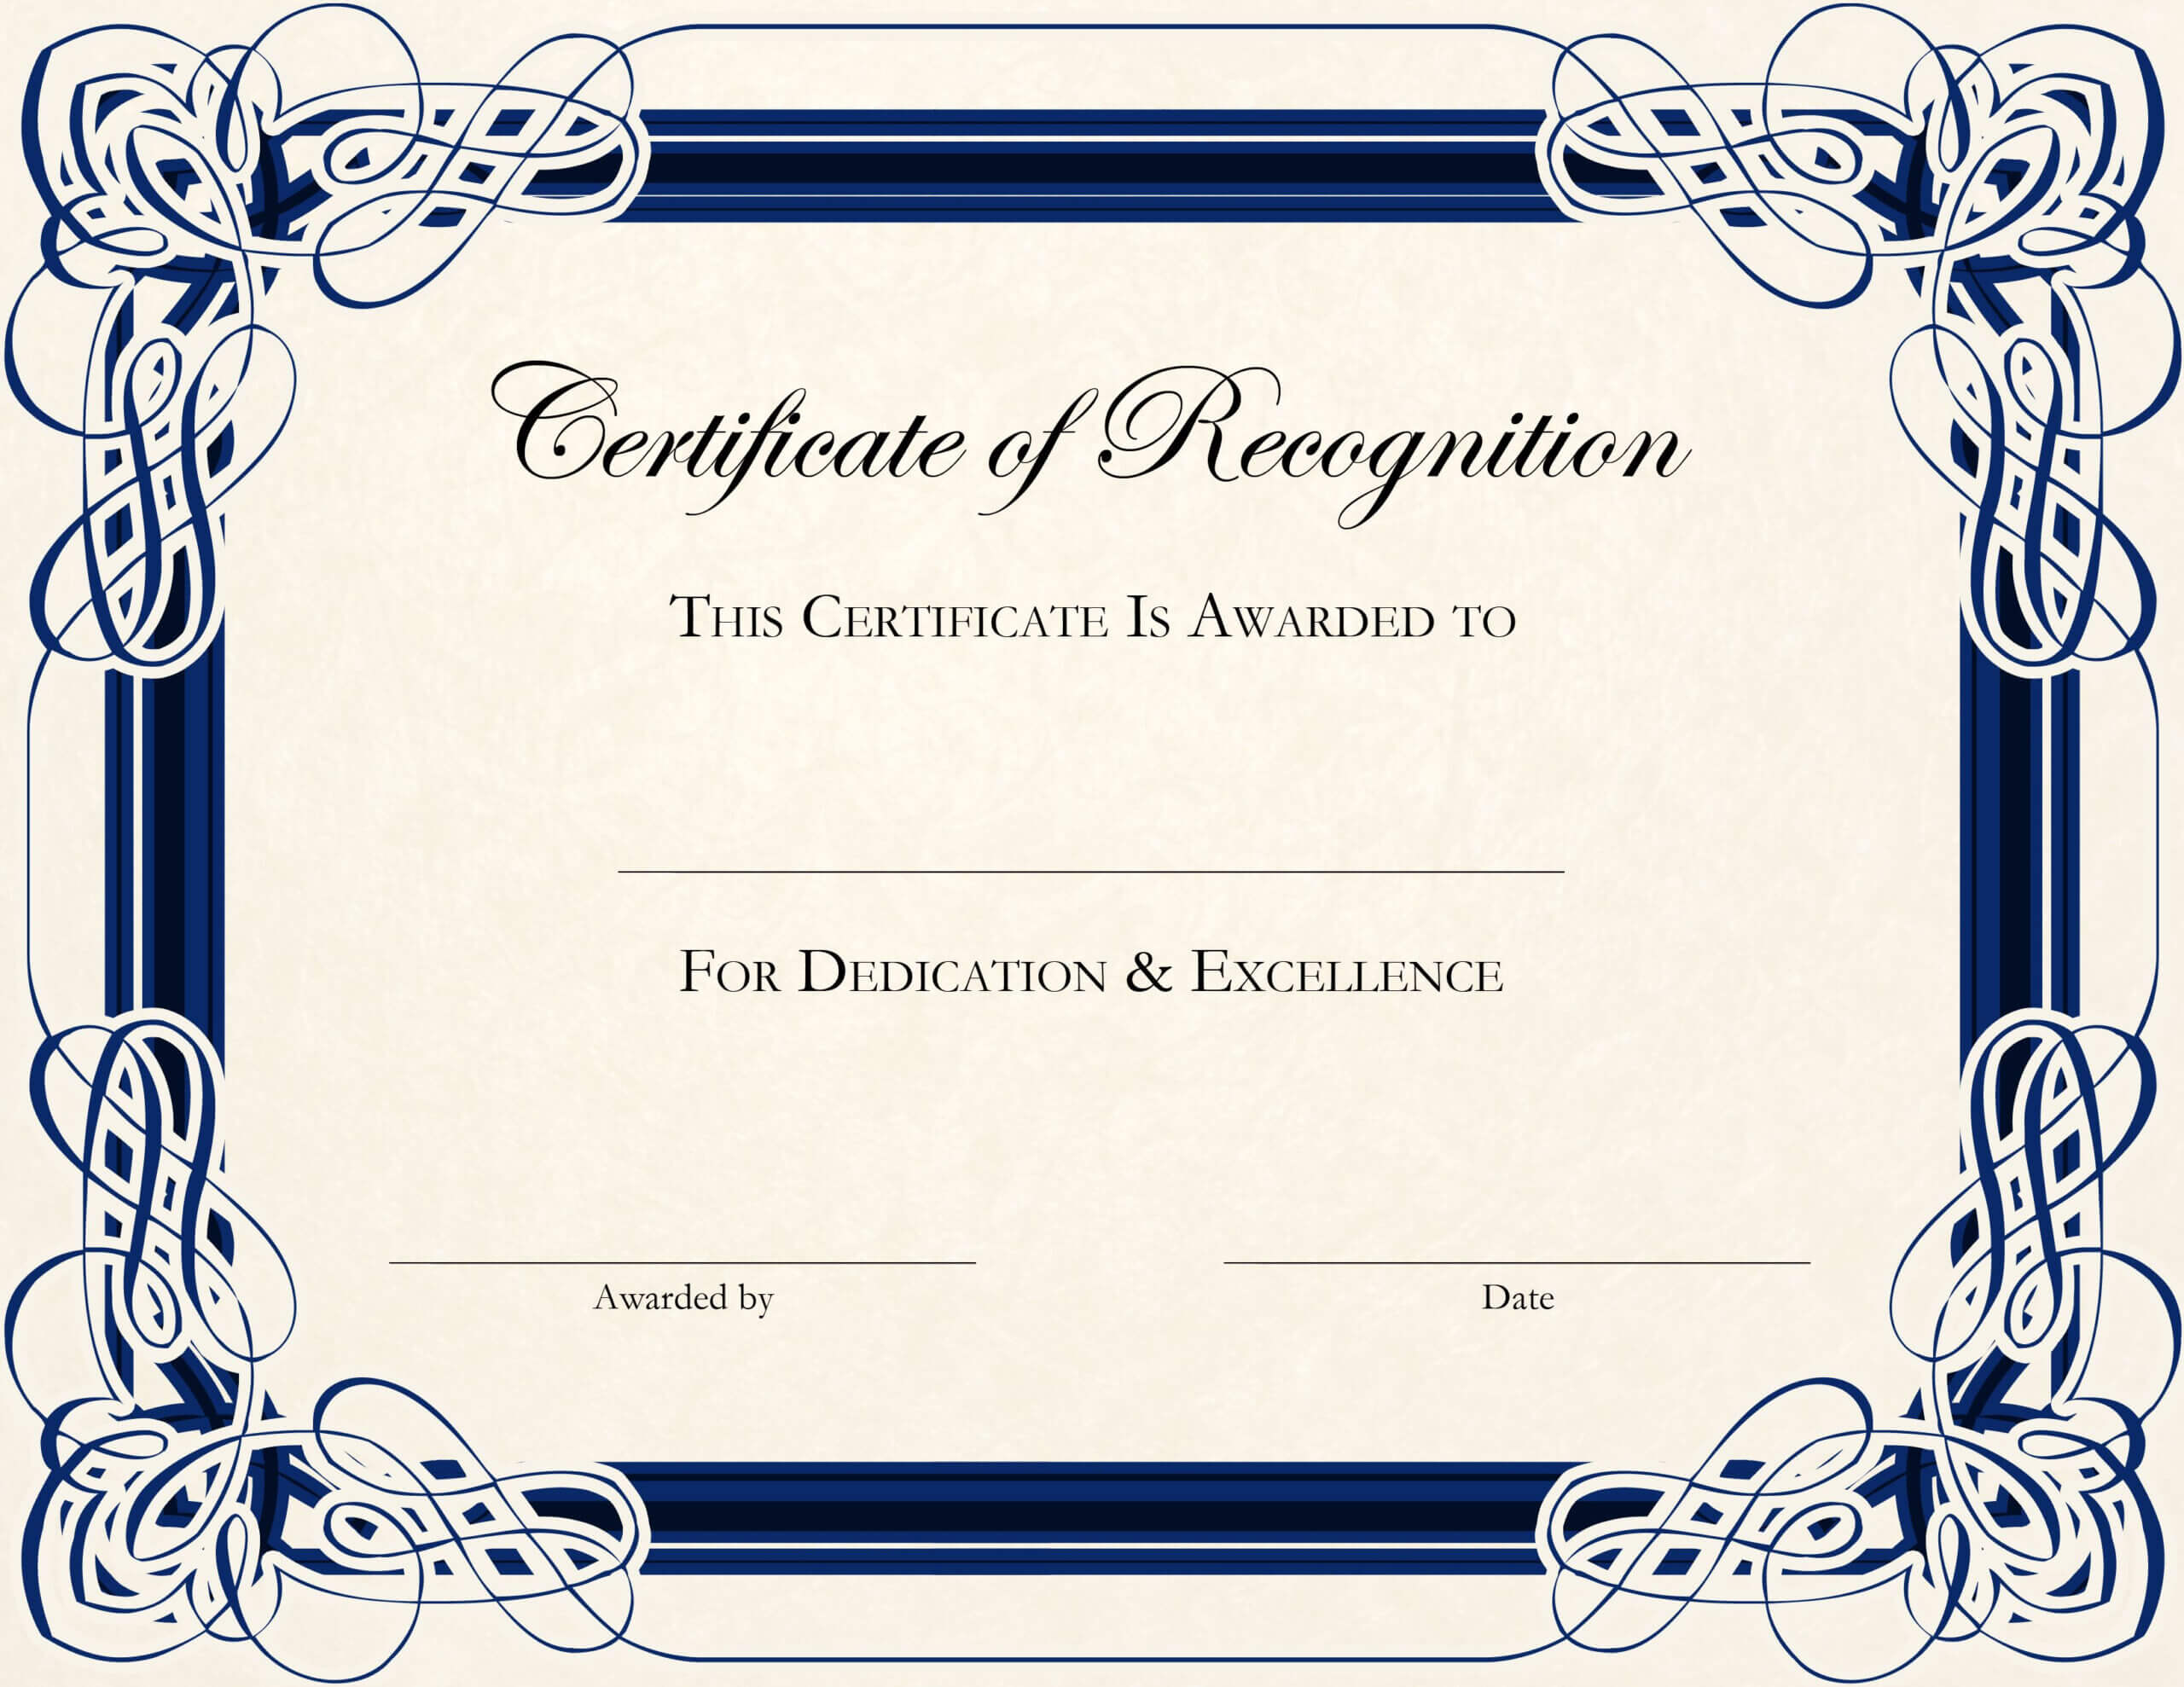 Certificate Template Designs Recognition Docs | Certificate For Certificate Of Recognition Word Template